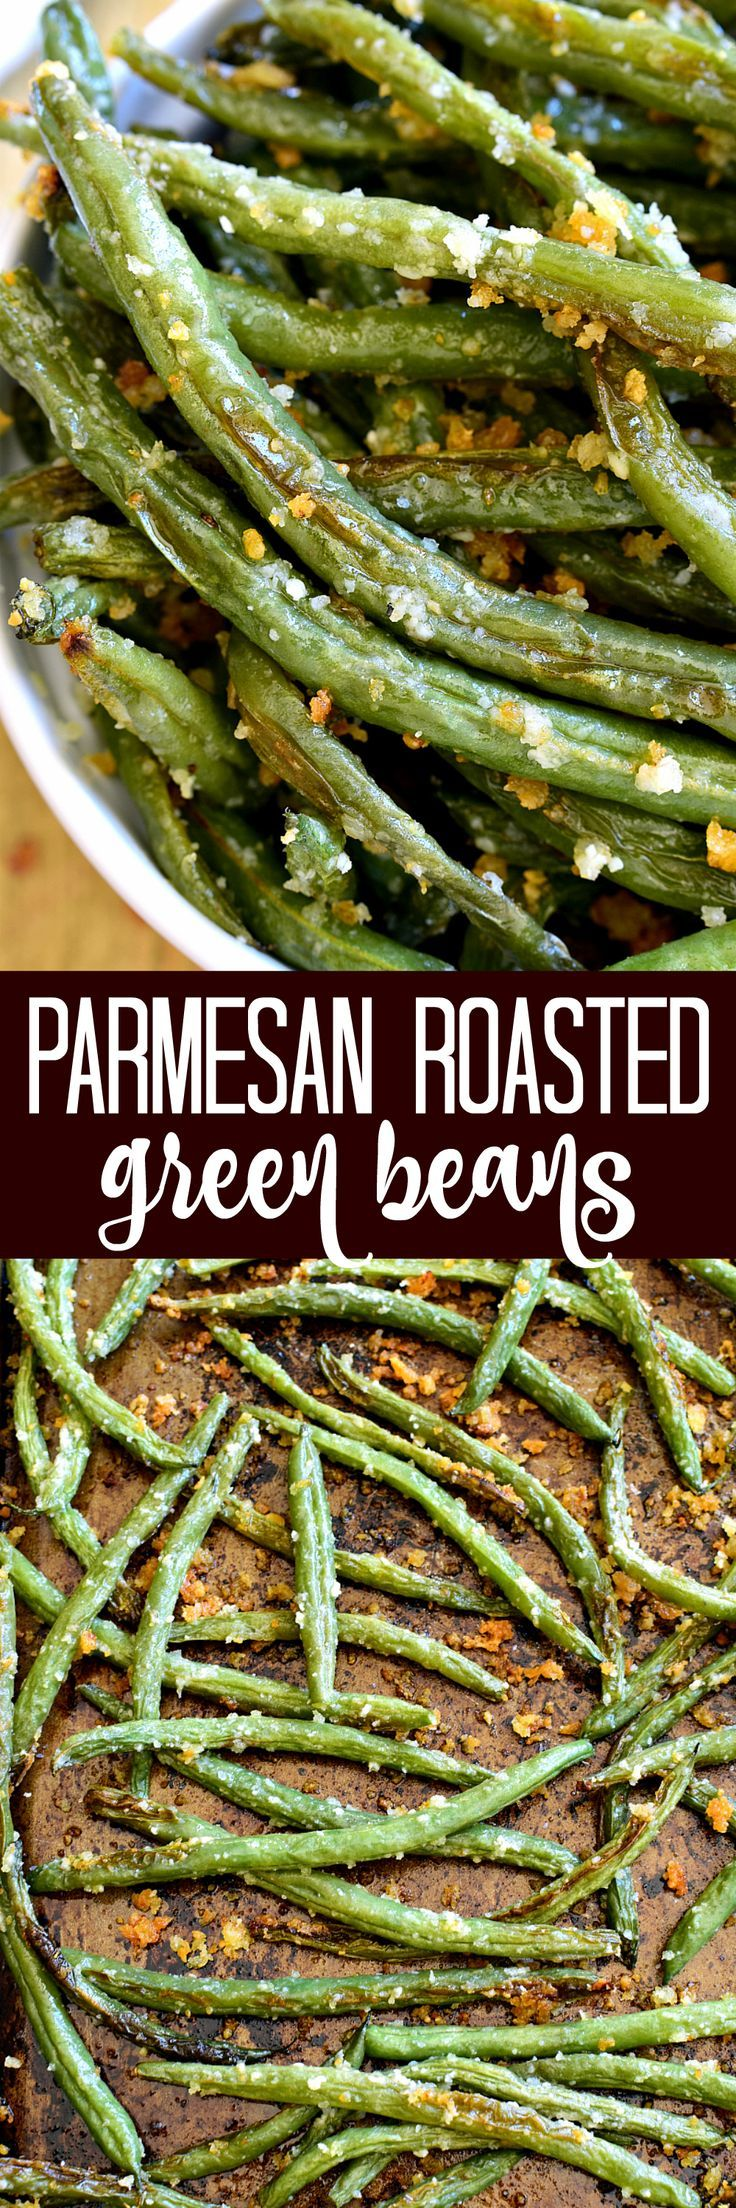 These Parmesan Roasted Green Beans are the most delicious way to enjoy fresh green beans! Perfect for holidays, dinners, or a healthy snack....and best of all, they're made with just 5 ingredients! If you want to see more,follow me: Pinterest:Style Life